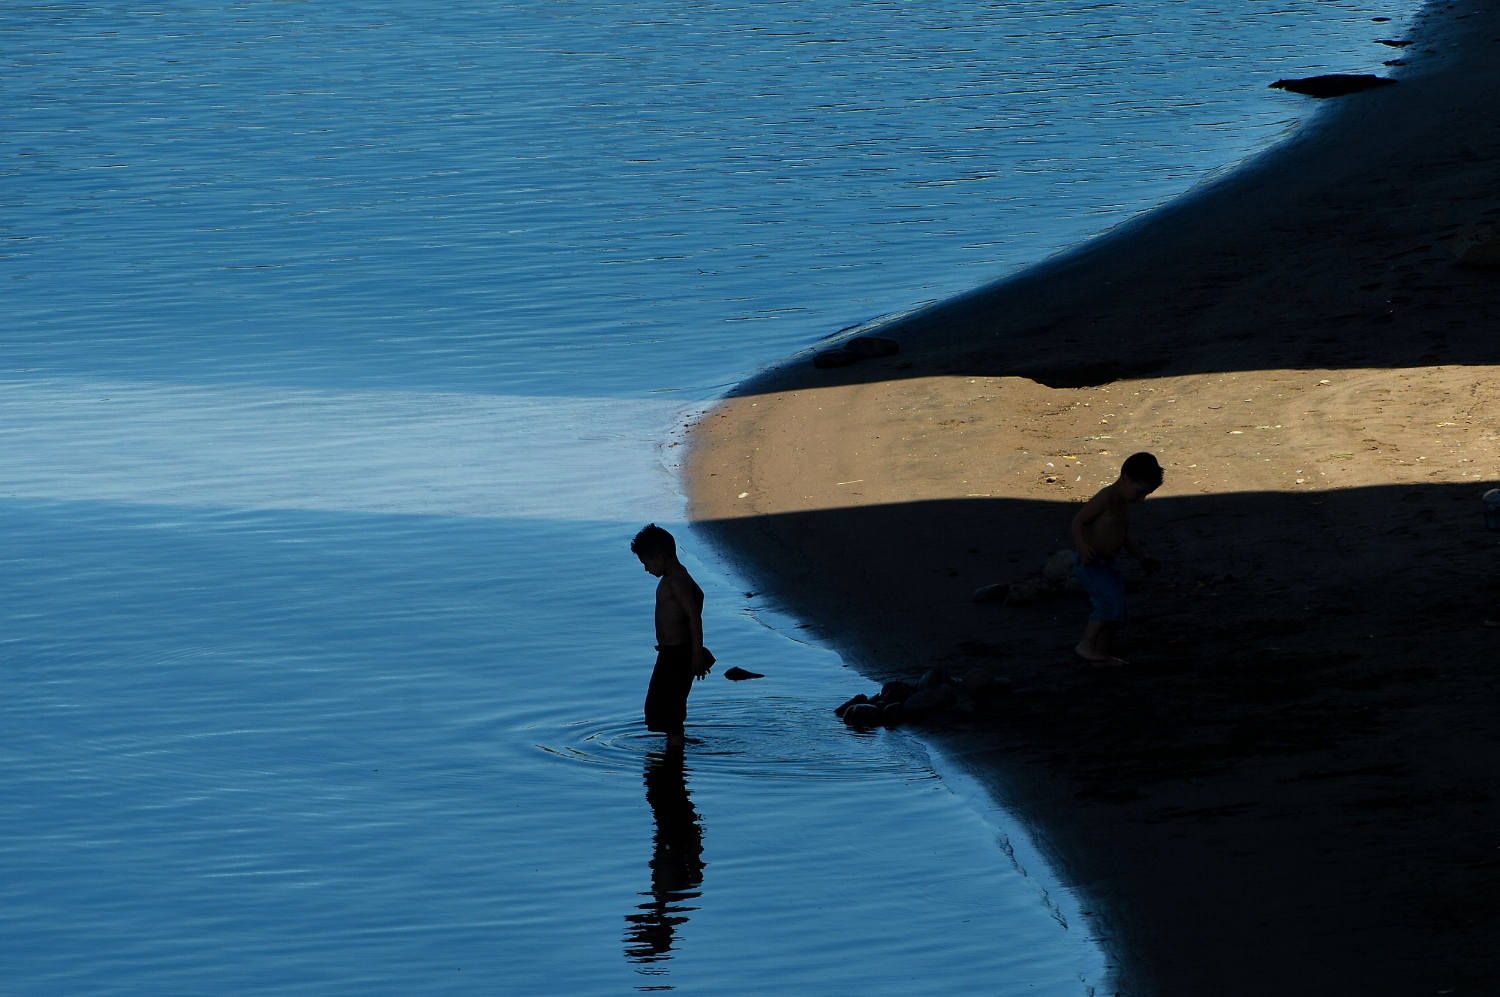 A young boy wades into the shallow water of the American River beneath the twin spans of the I-5 bridge at Discovery Park in Sacramento on Thursday, June 6, 2013.